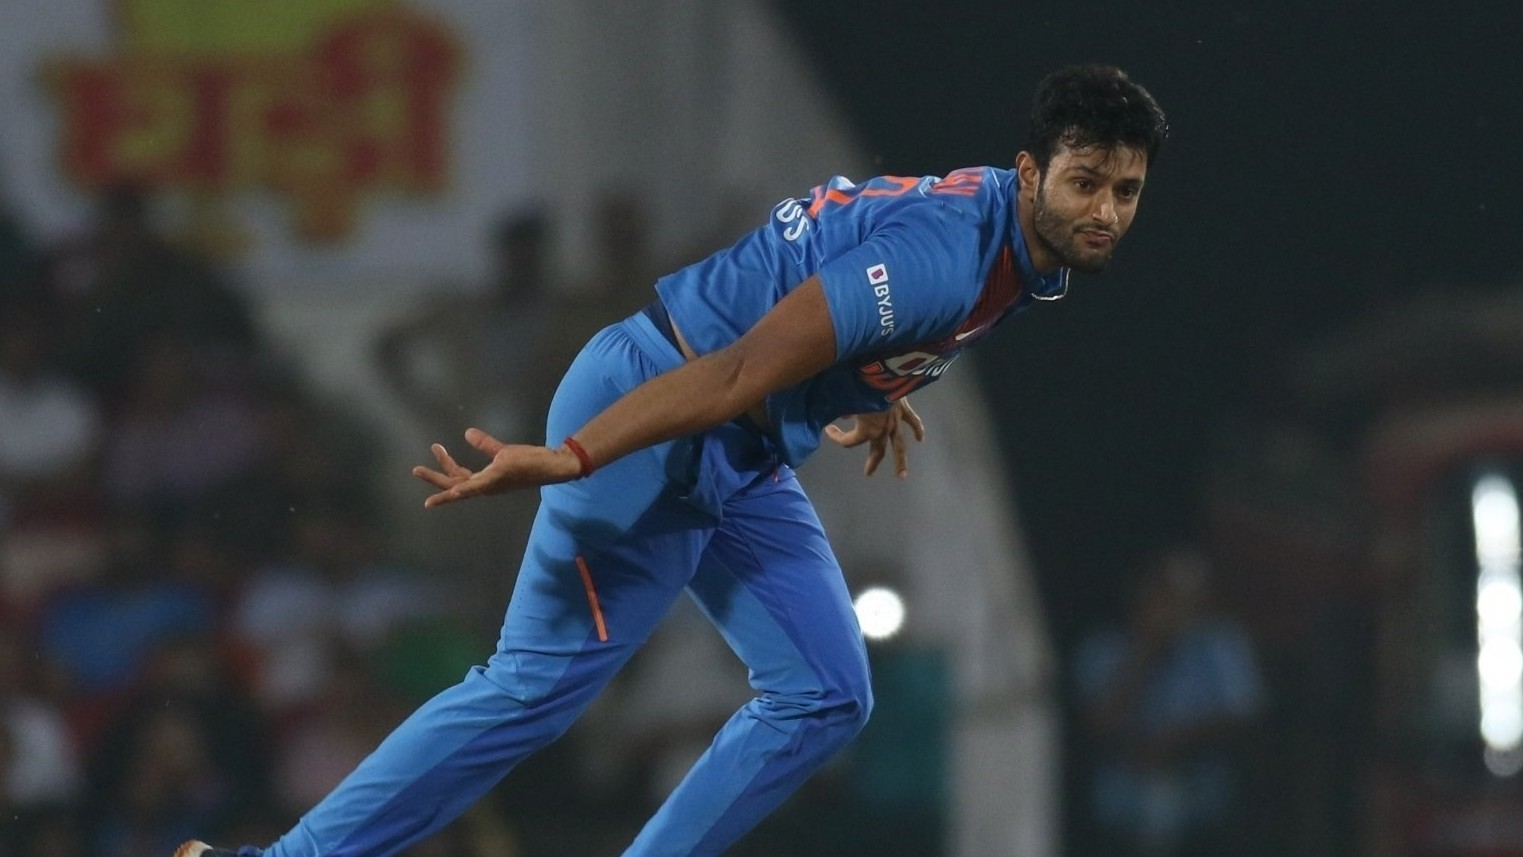 IND v WI 2019: Shivam Dube willing to work hard and prove his mettle at international level